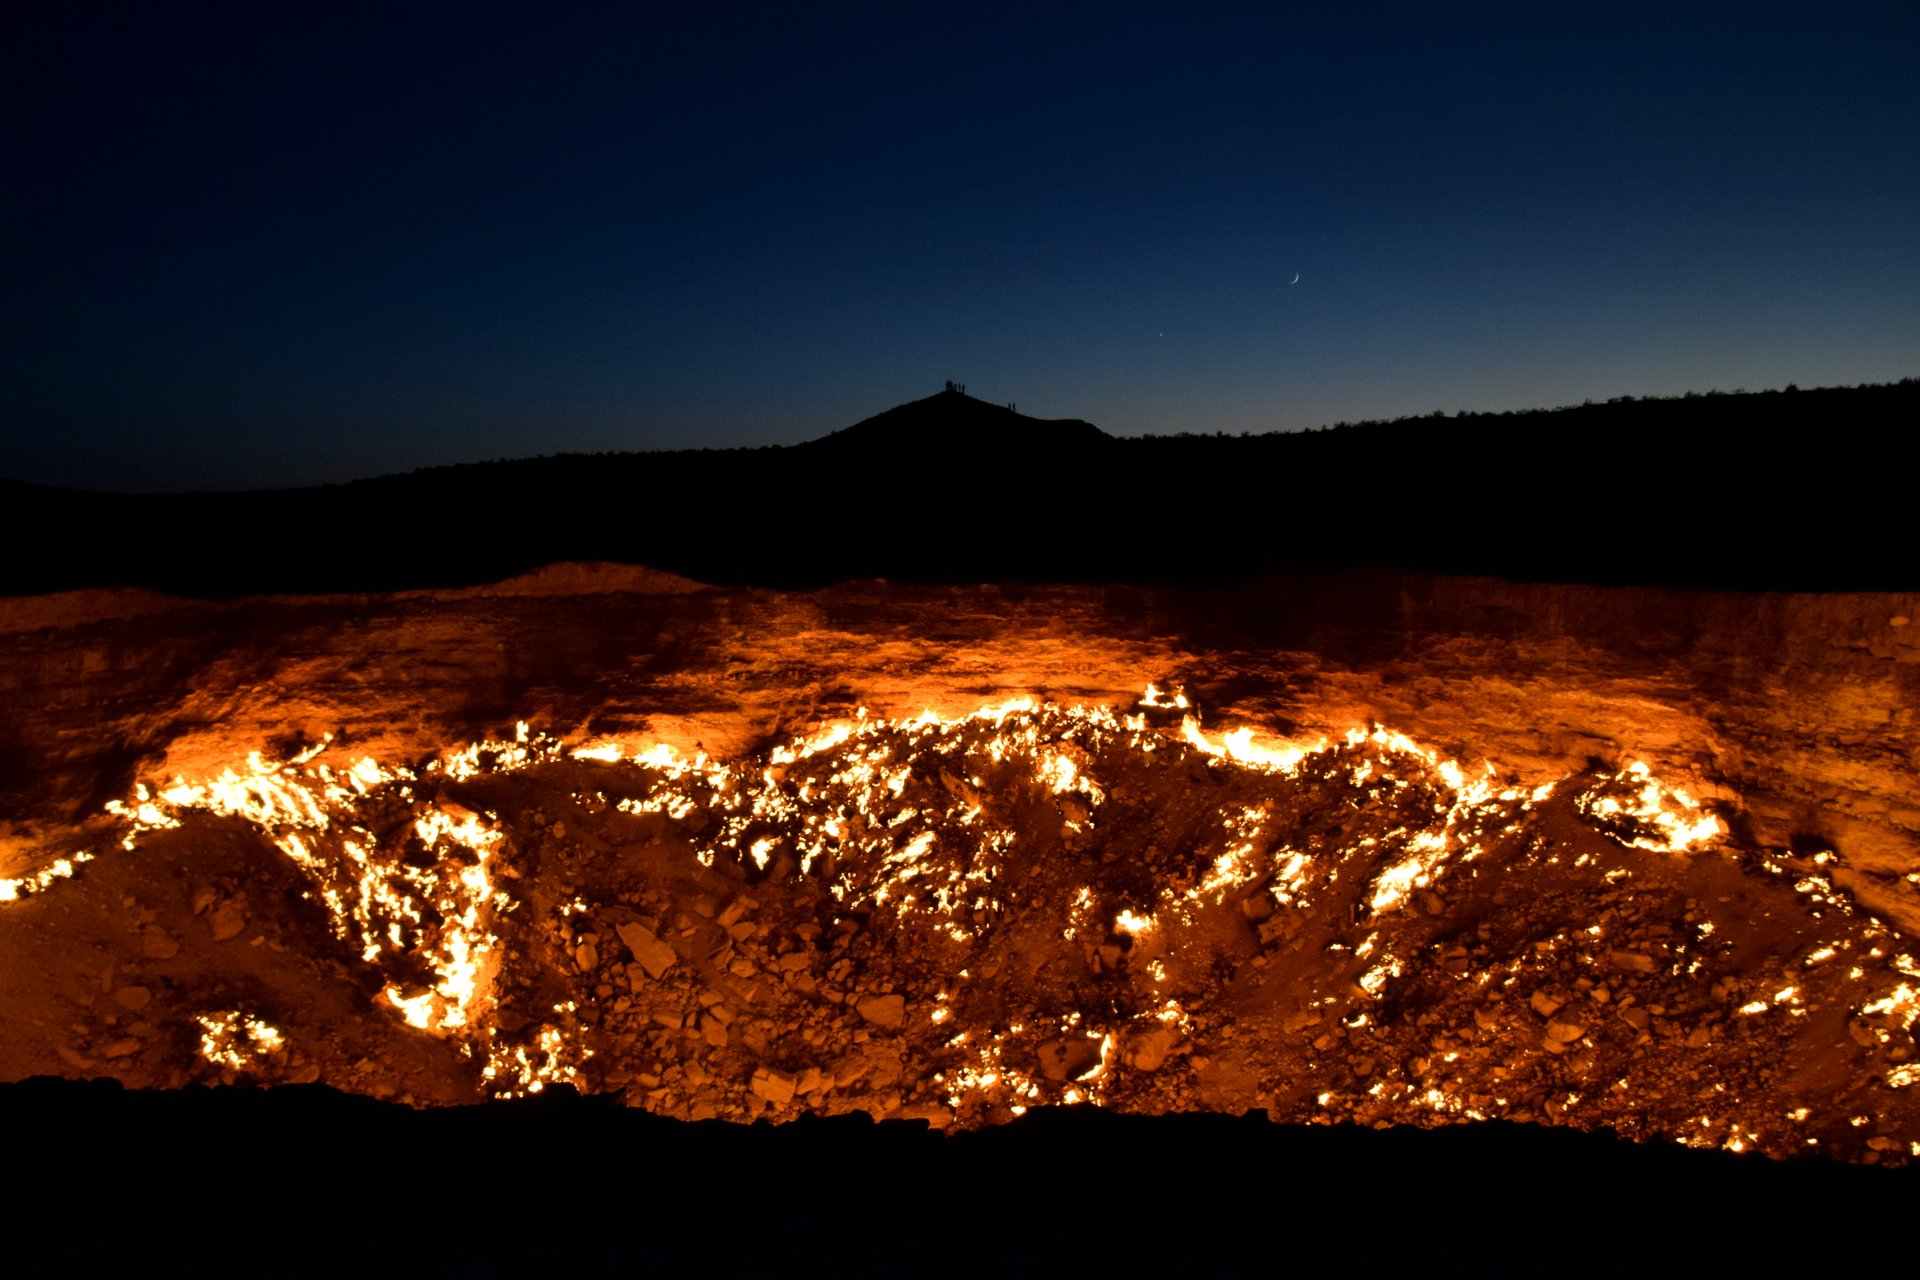 Best time for The Gates of Hell (Darvaza Gas Crater) in Turkmenistan 2020